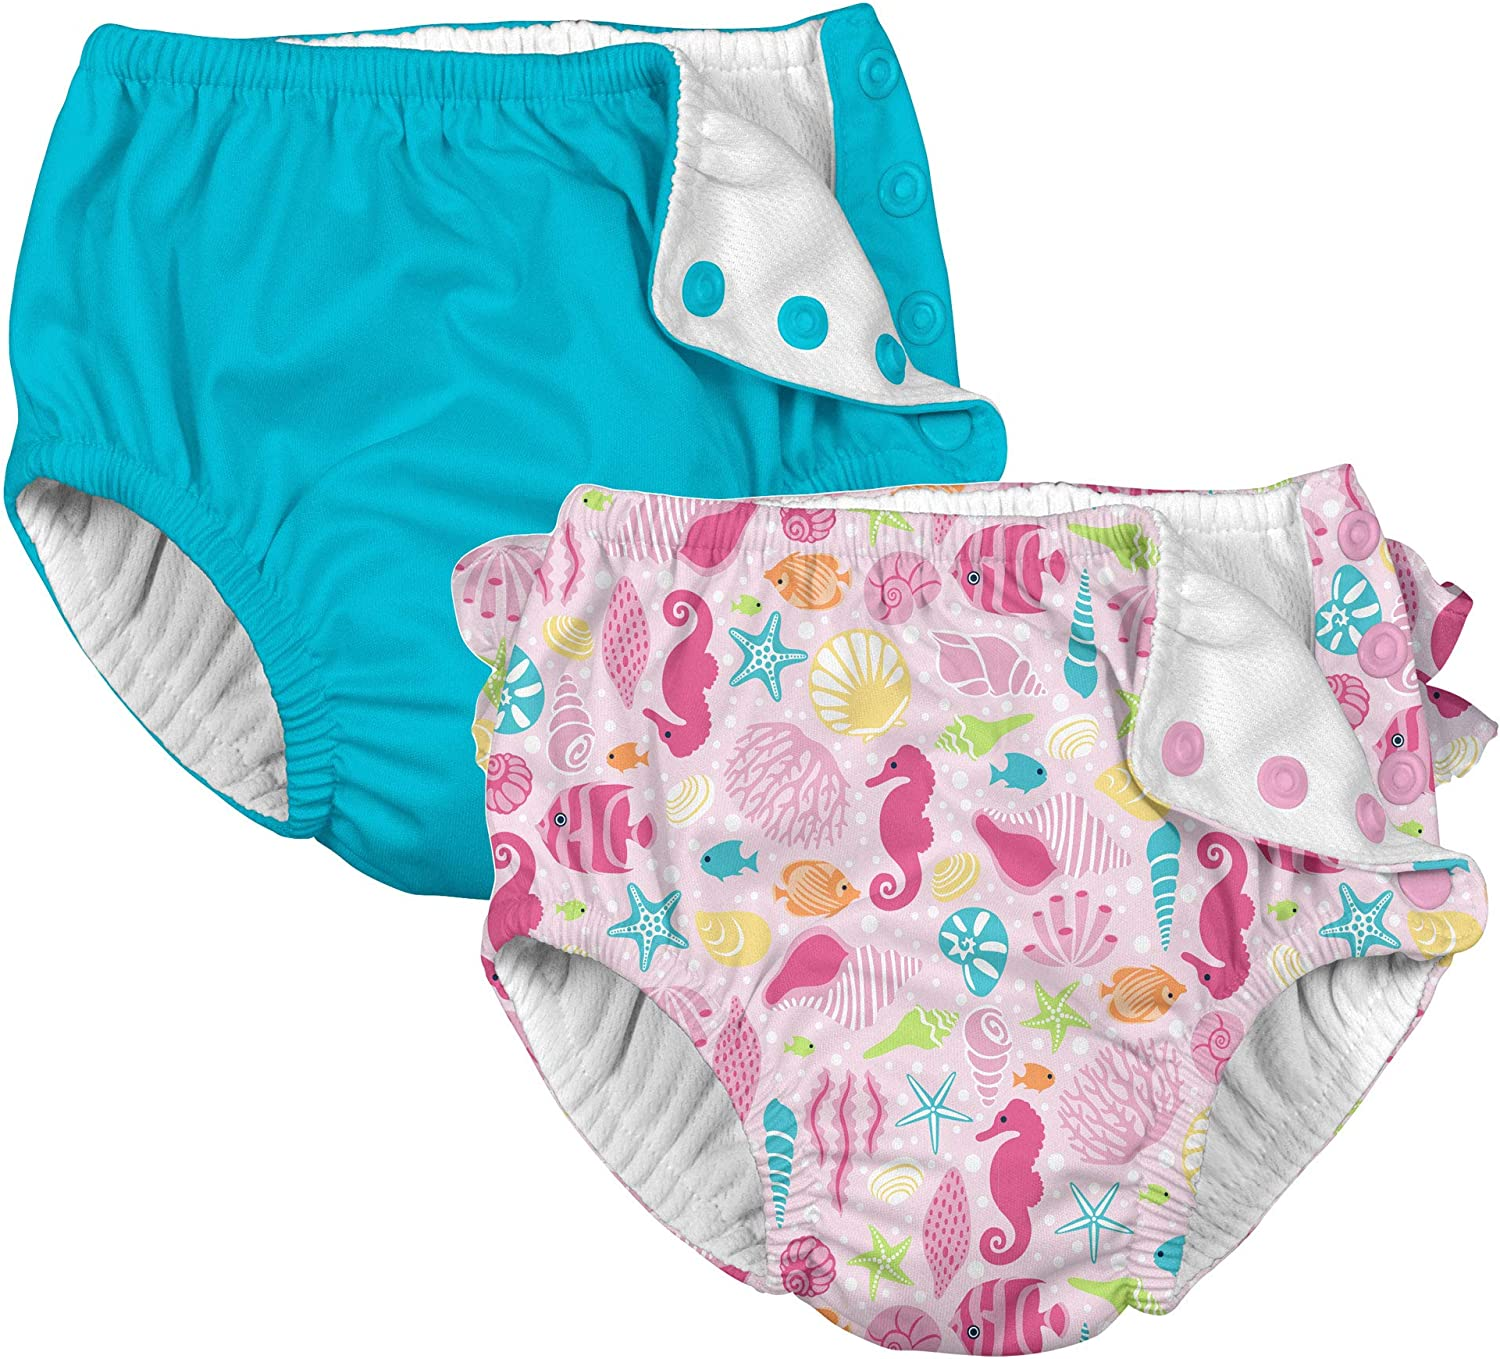 i Play. Baby Girls Cloth Reusable Swim Diaper - 2 Pack: Clothing, Shoes & Jewelry